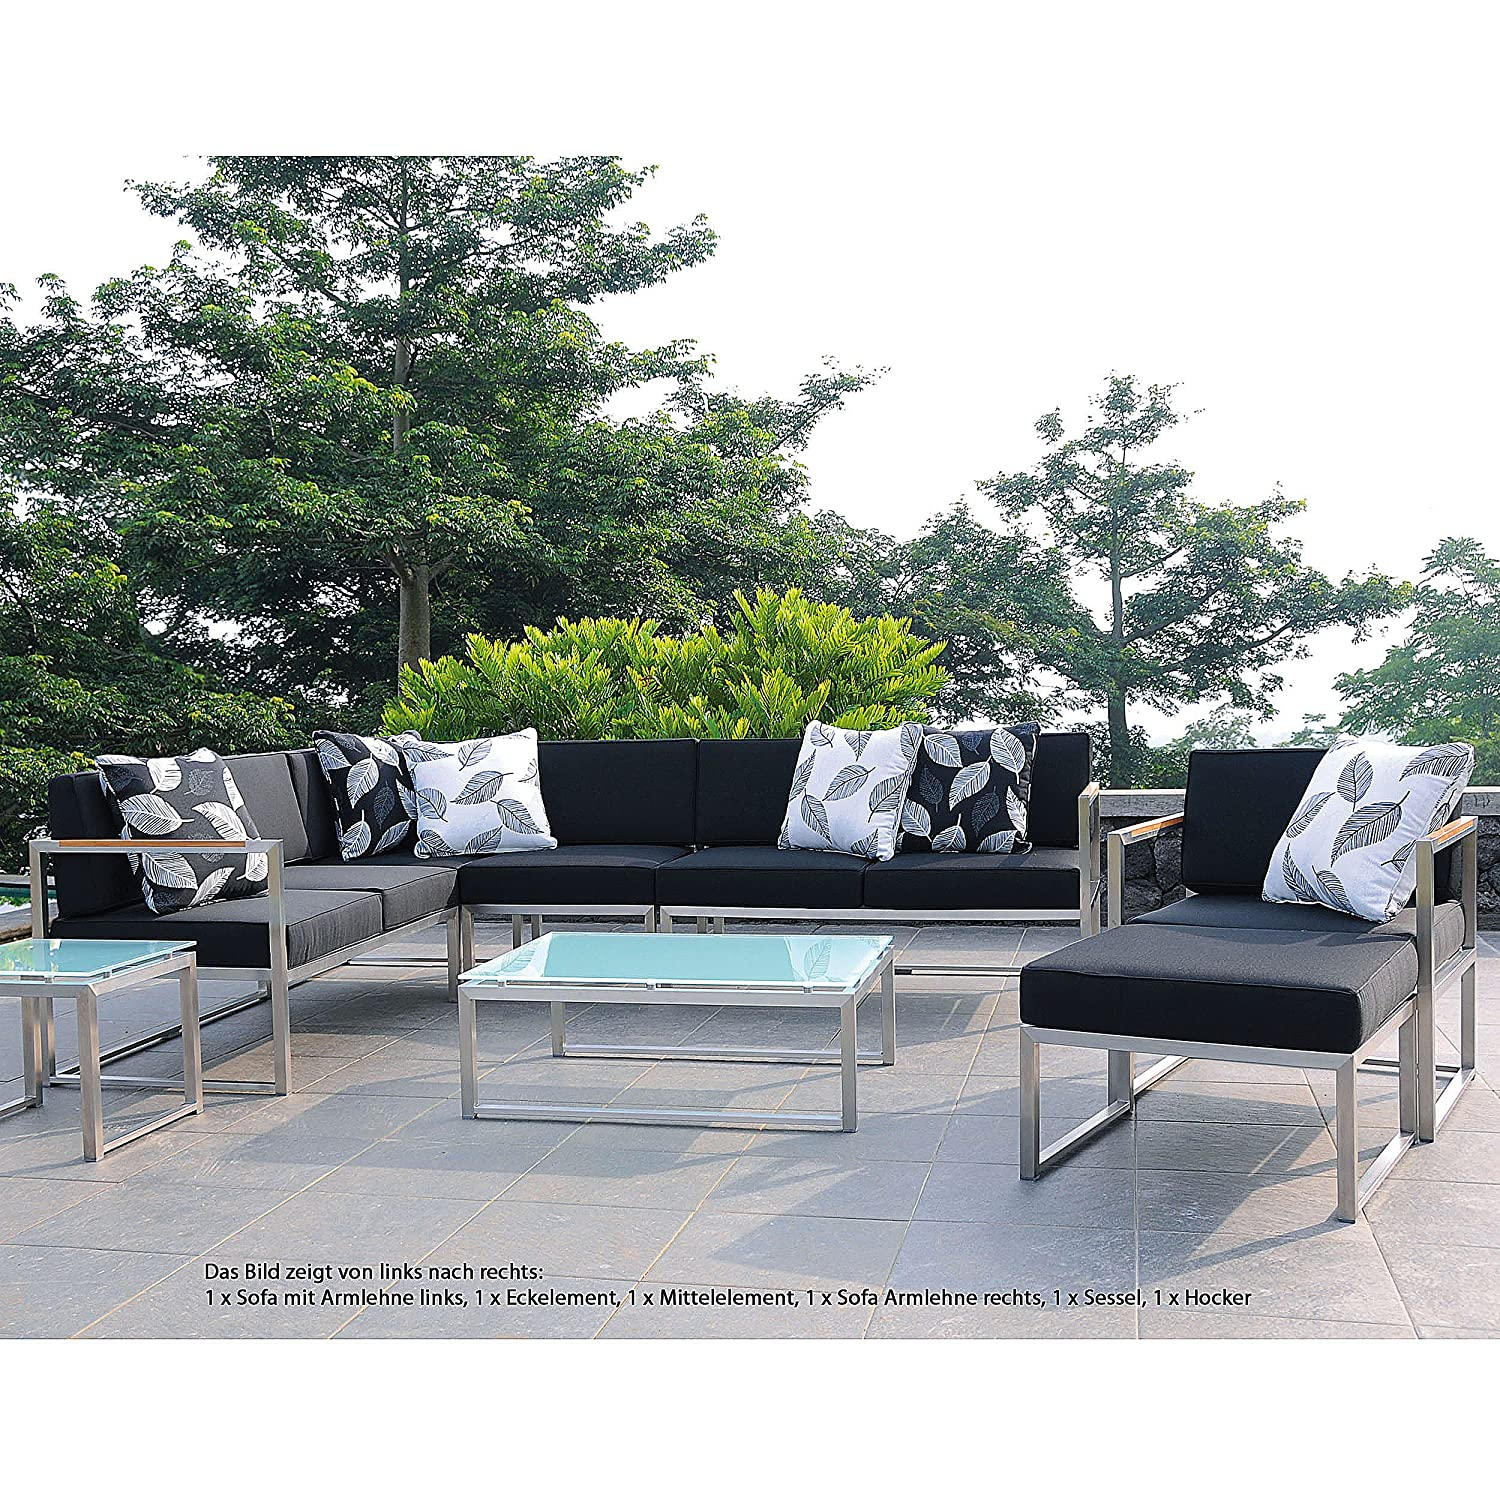 Lux Lounge Mittelelement 67 x 67 cm, h 62 cm taupe